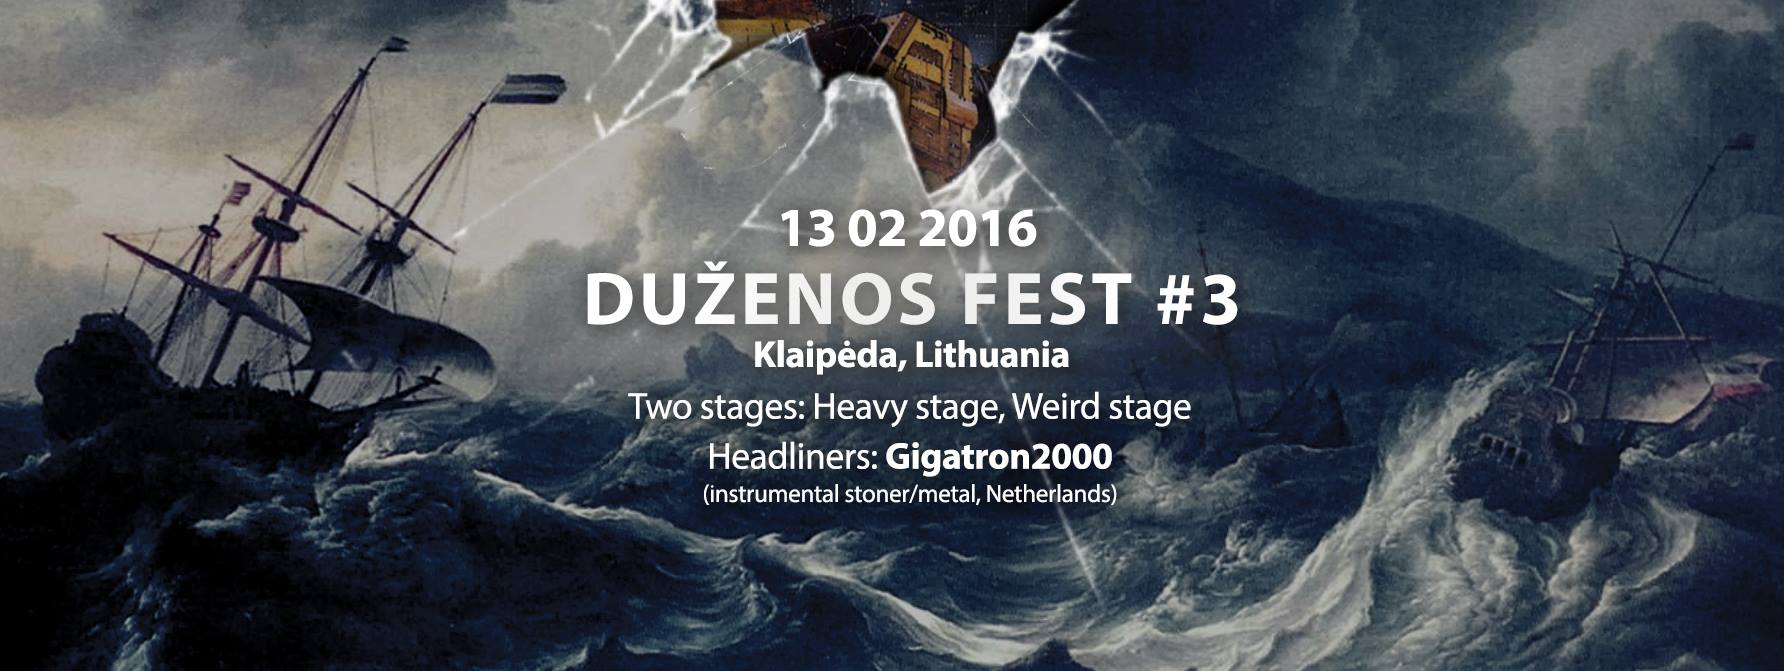 duzenos fest 3 updated FB cover